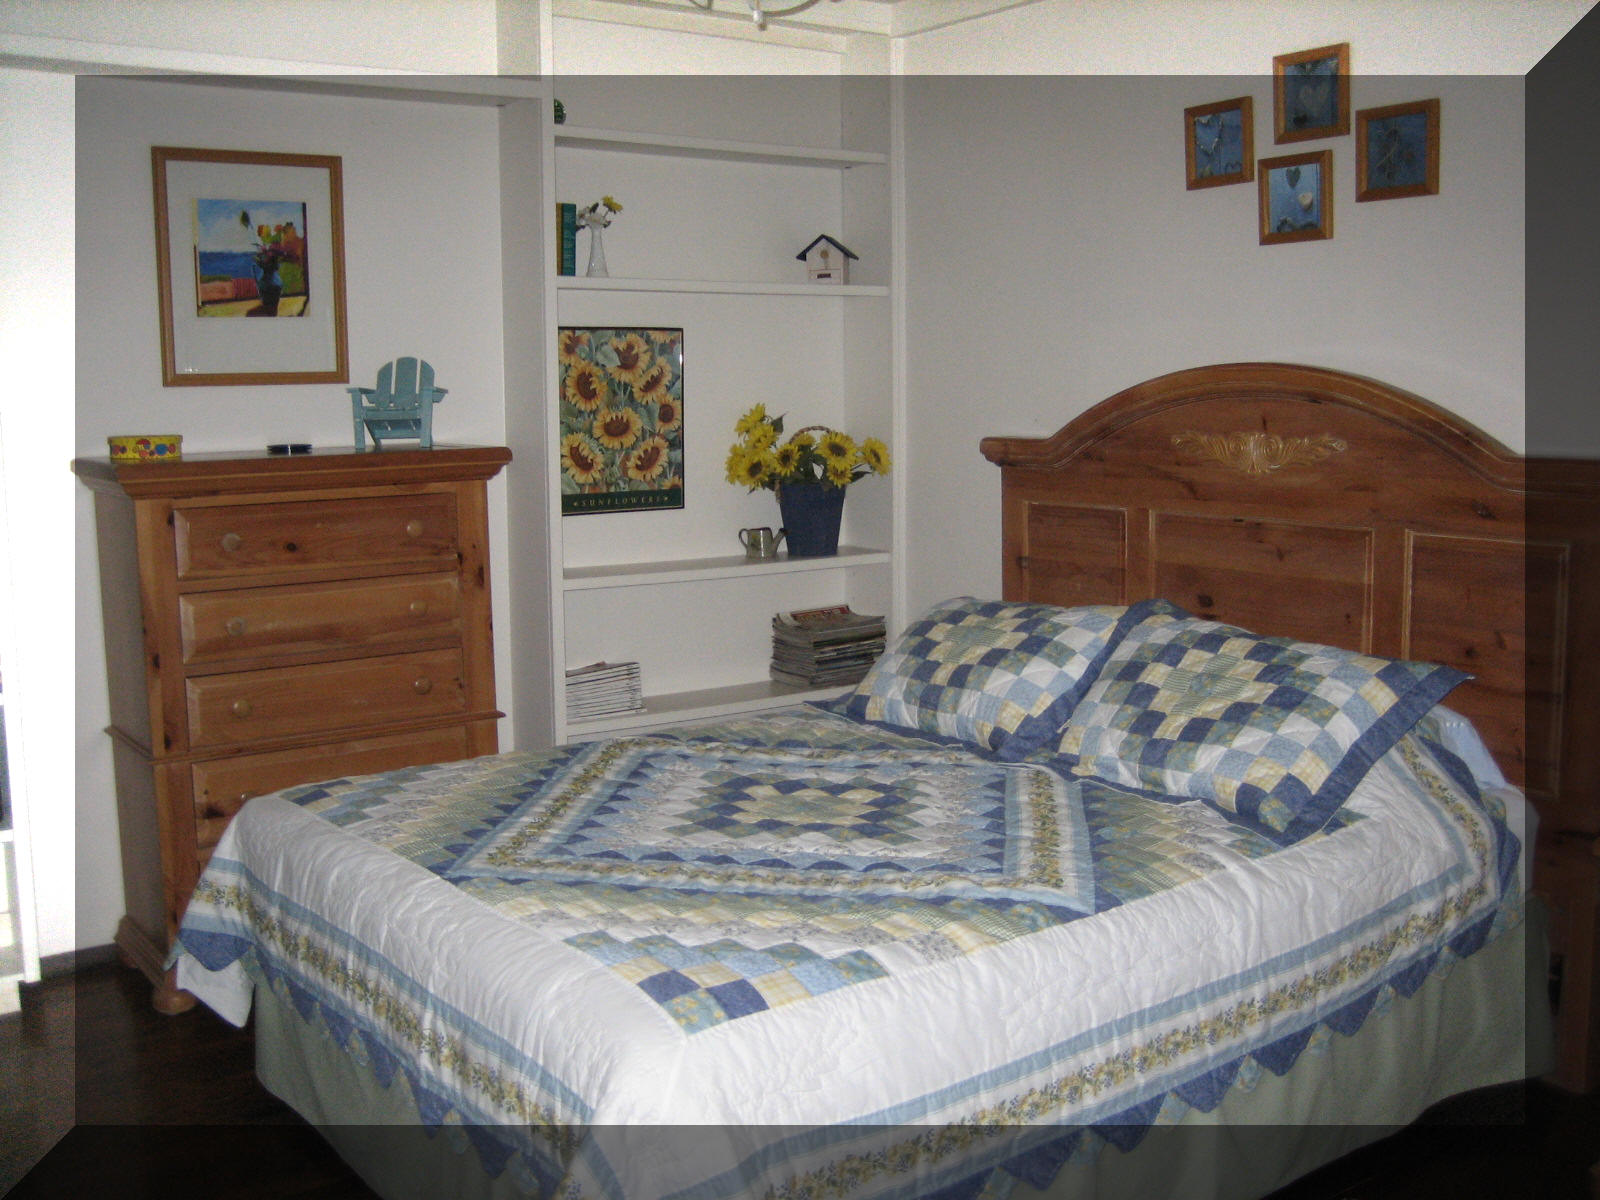 One of two guest bedrooms, one equipped with a bunk bed. Click to enlarge.